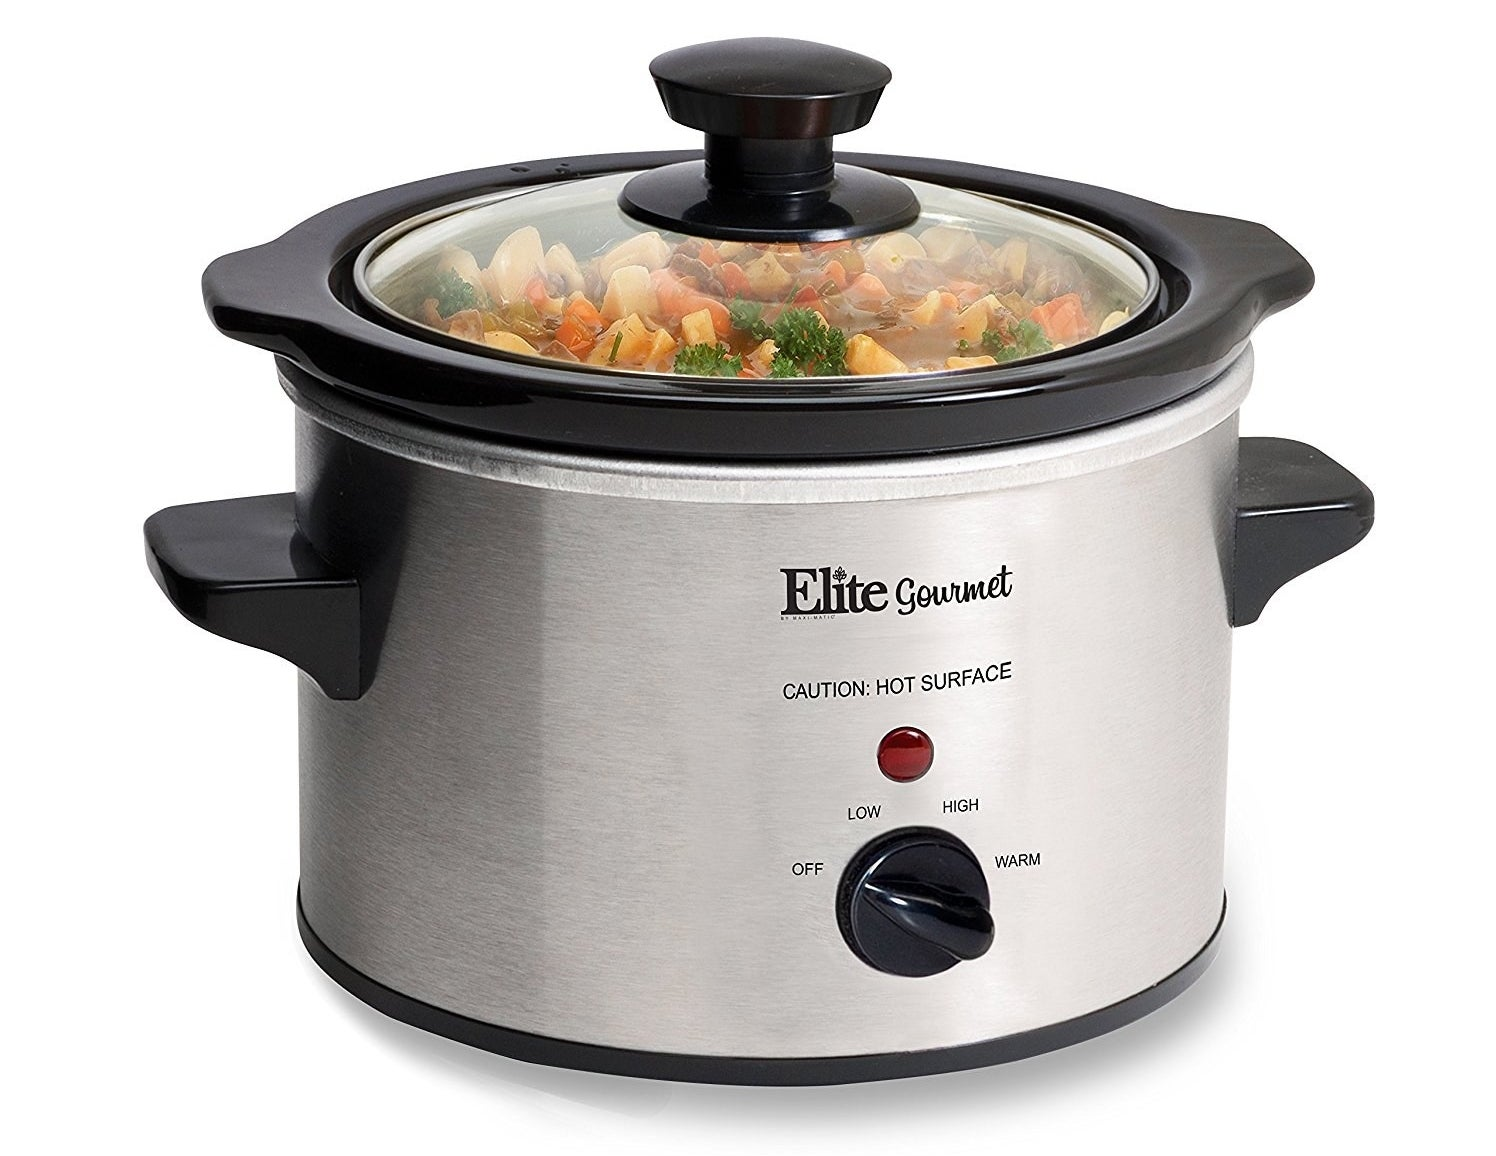 The slow cooker in silver, featuring black handles and a glass lid